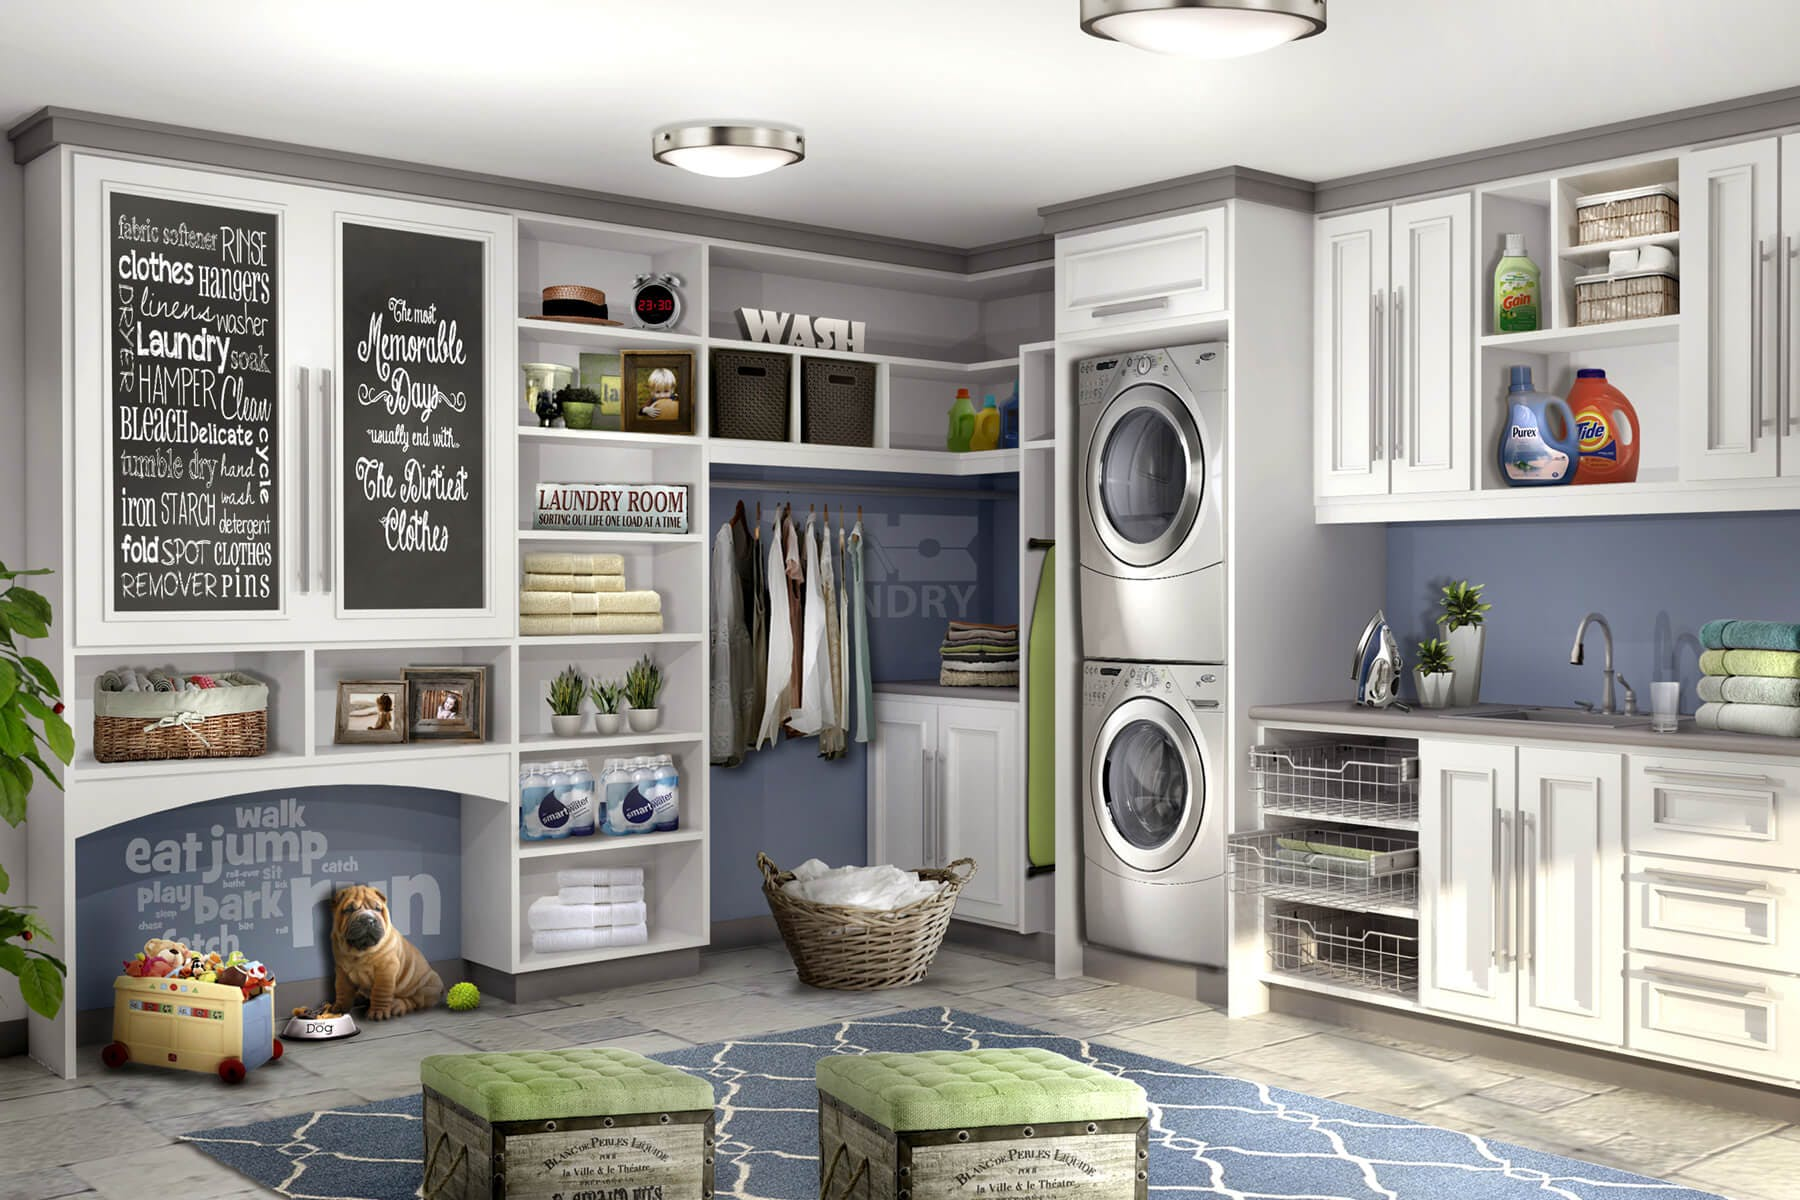 Adorable Laundry Room With Pet Nook Chalk Board And Counter Top